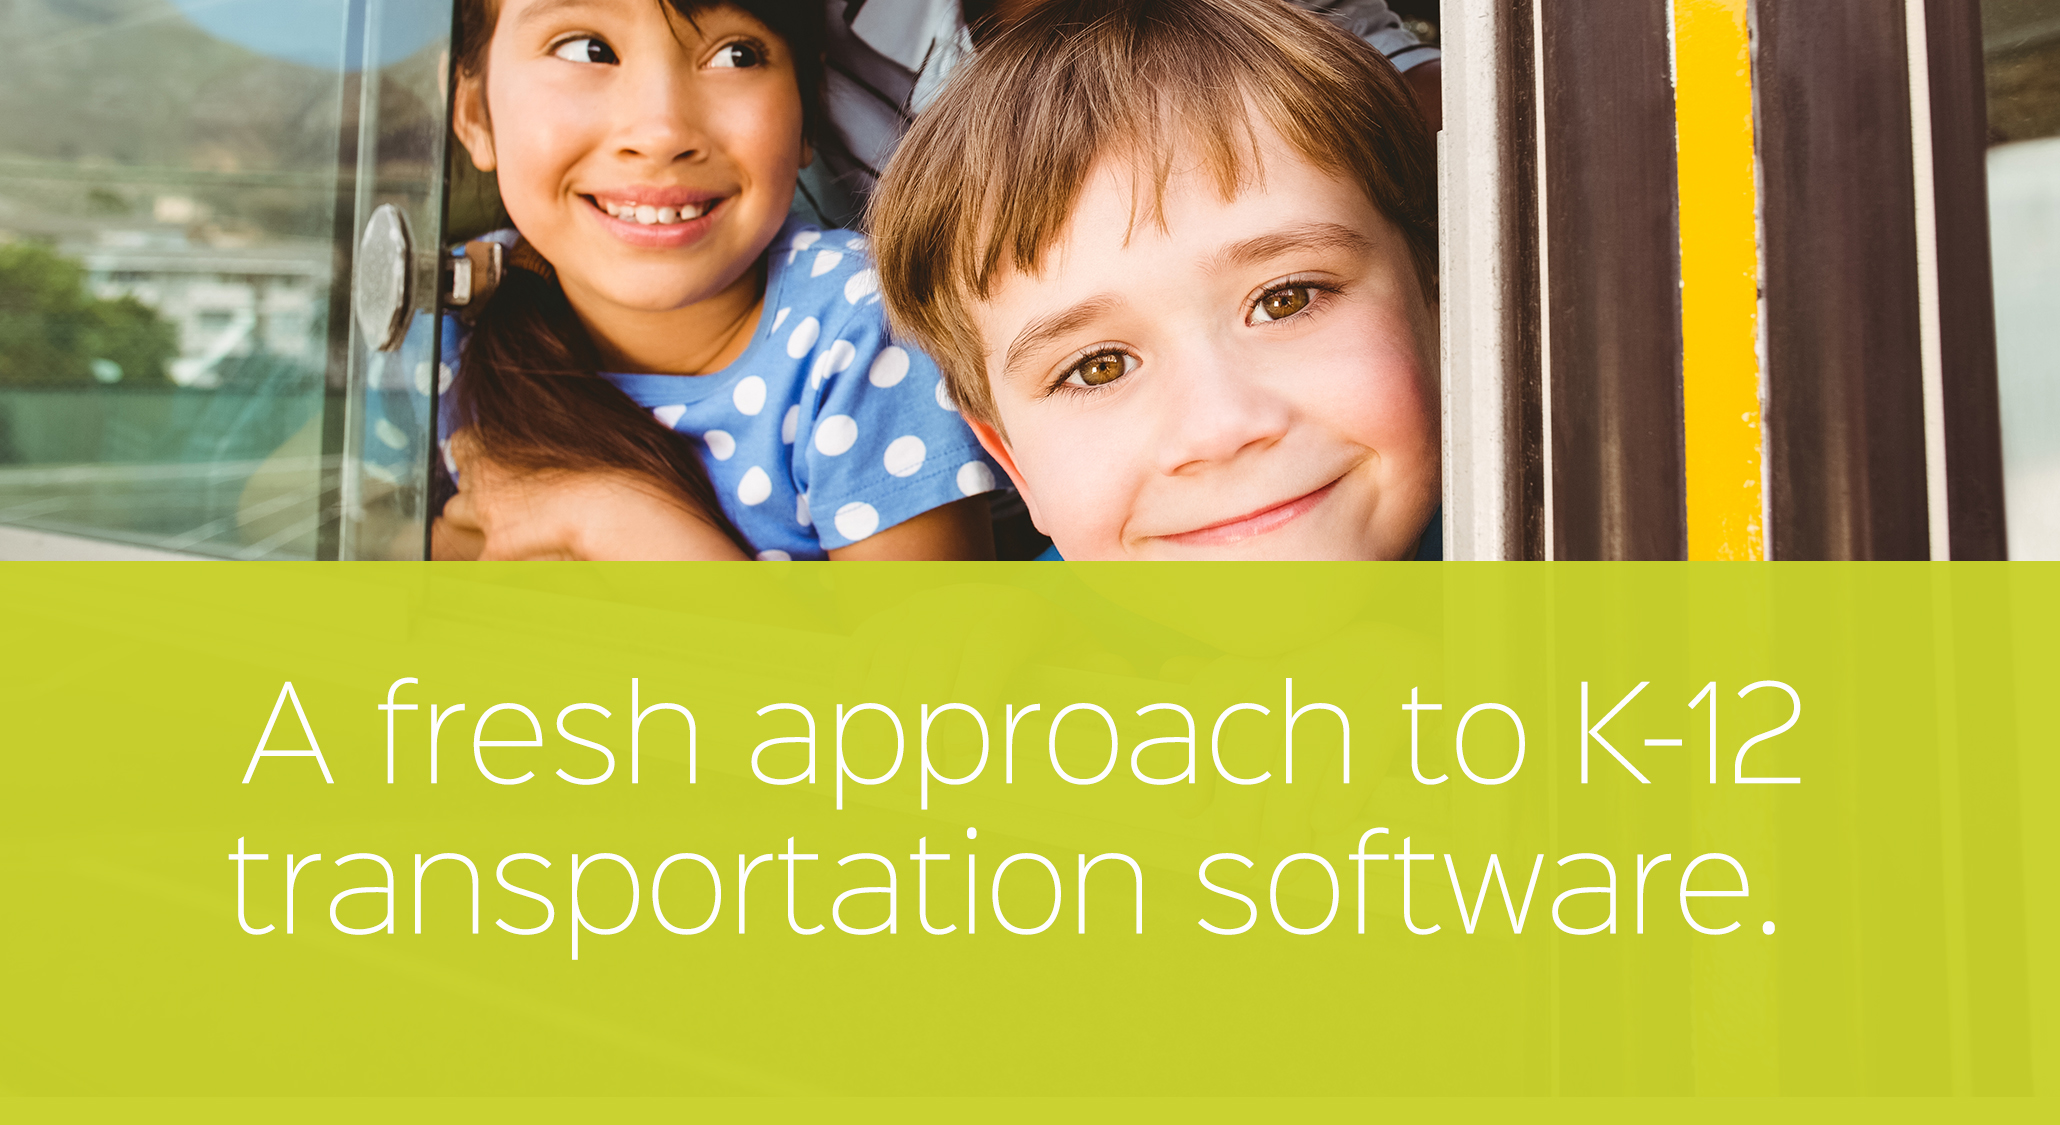 K-12 Transportation Software: A New Division of TripSpark